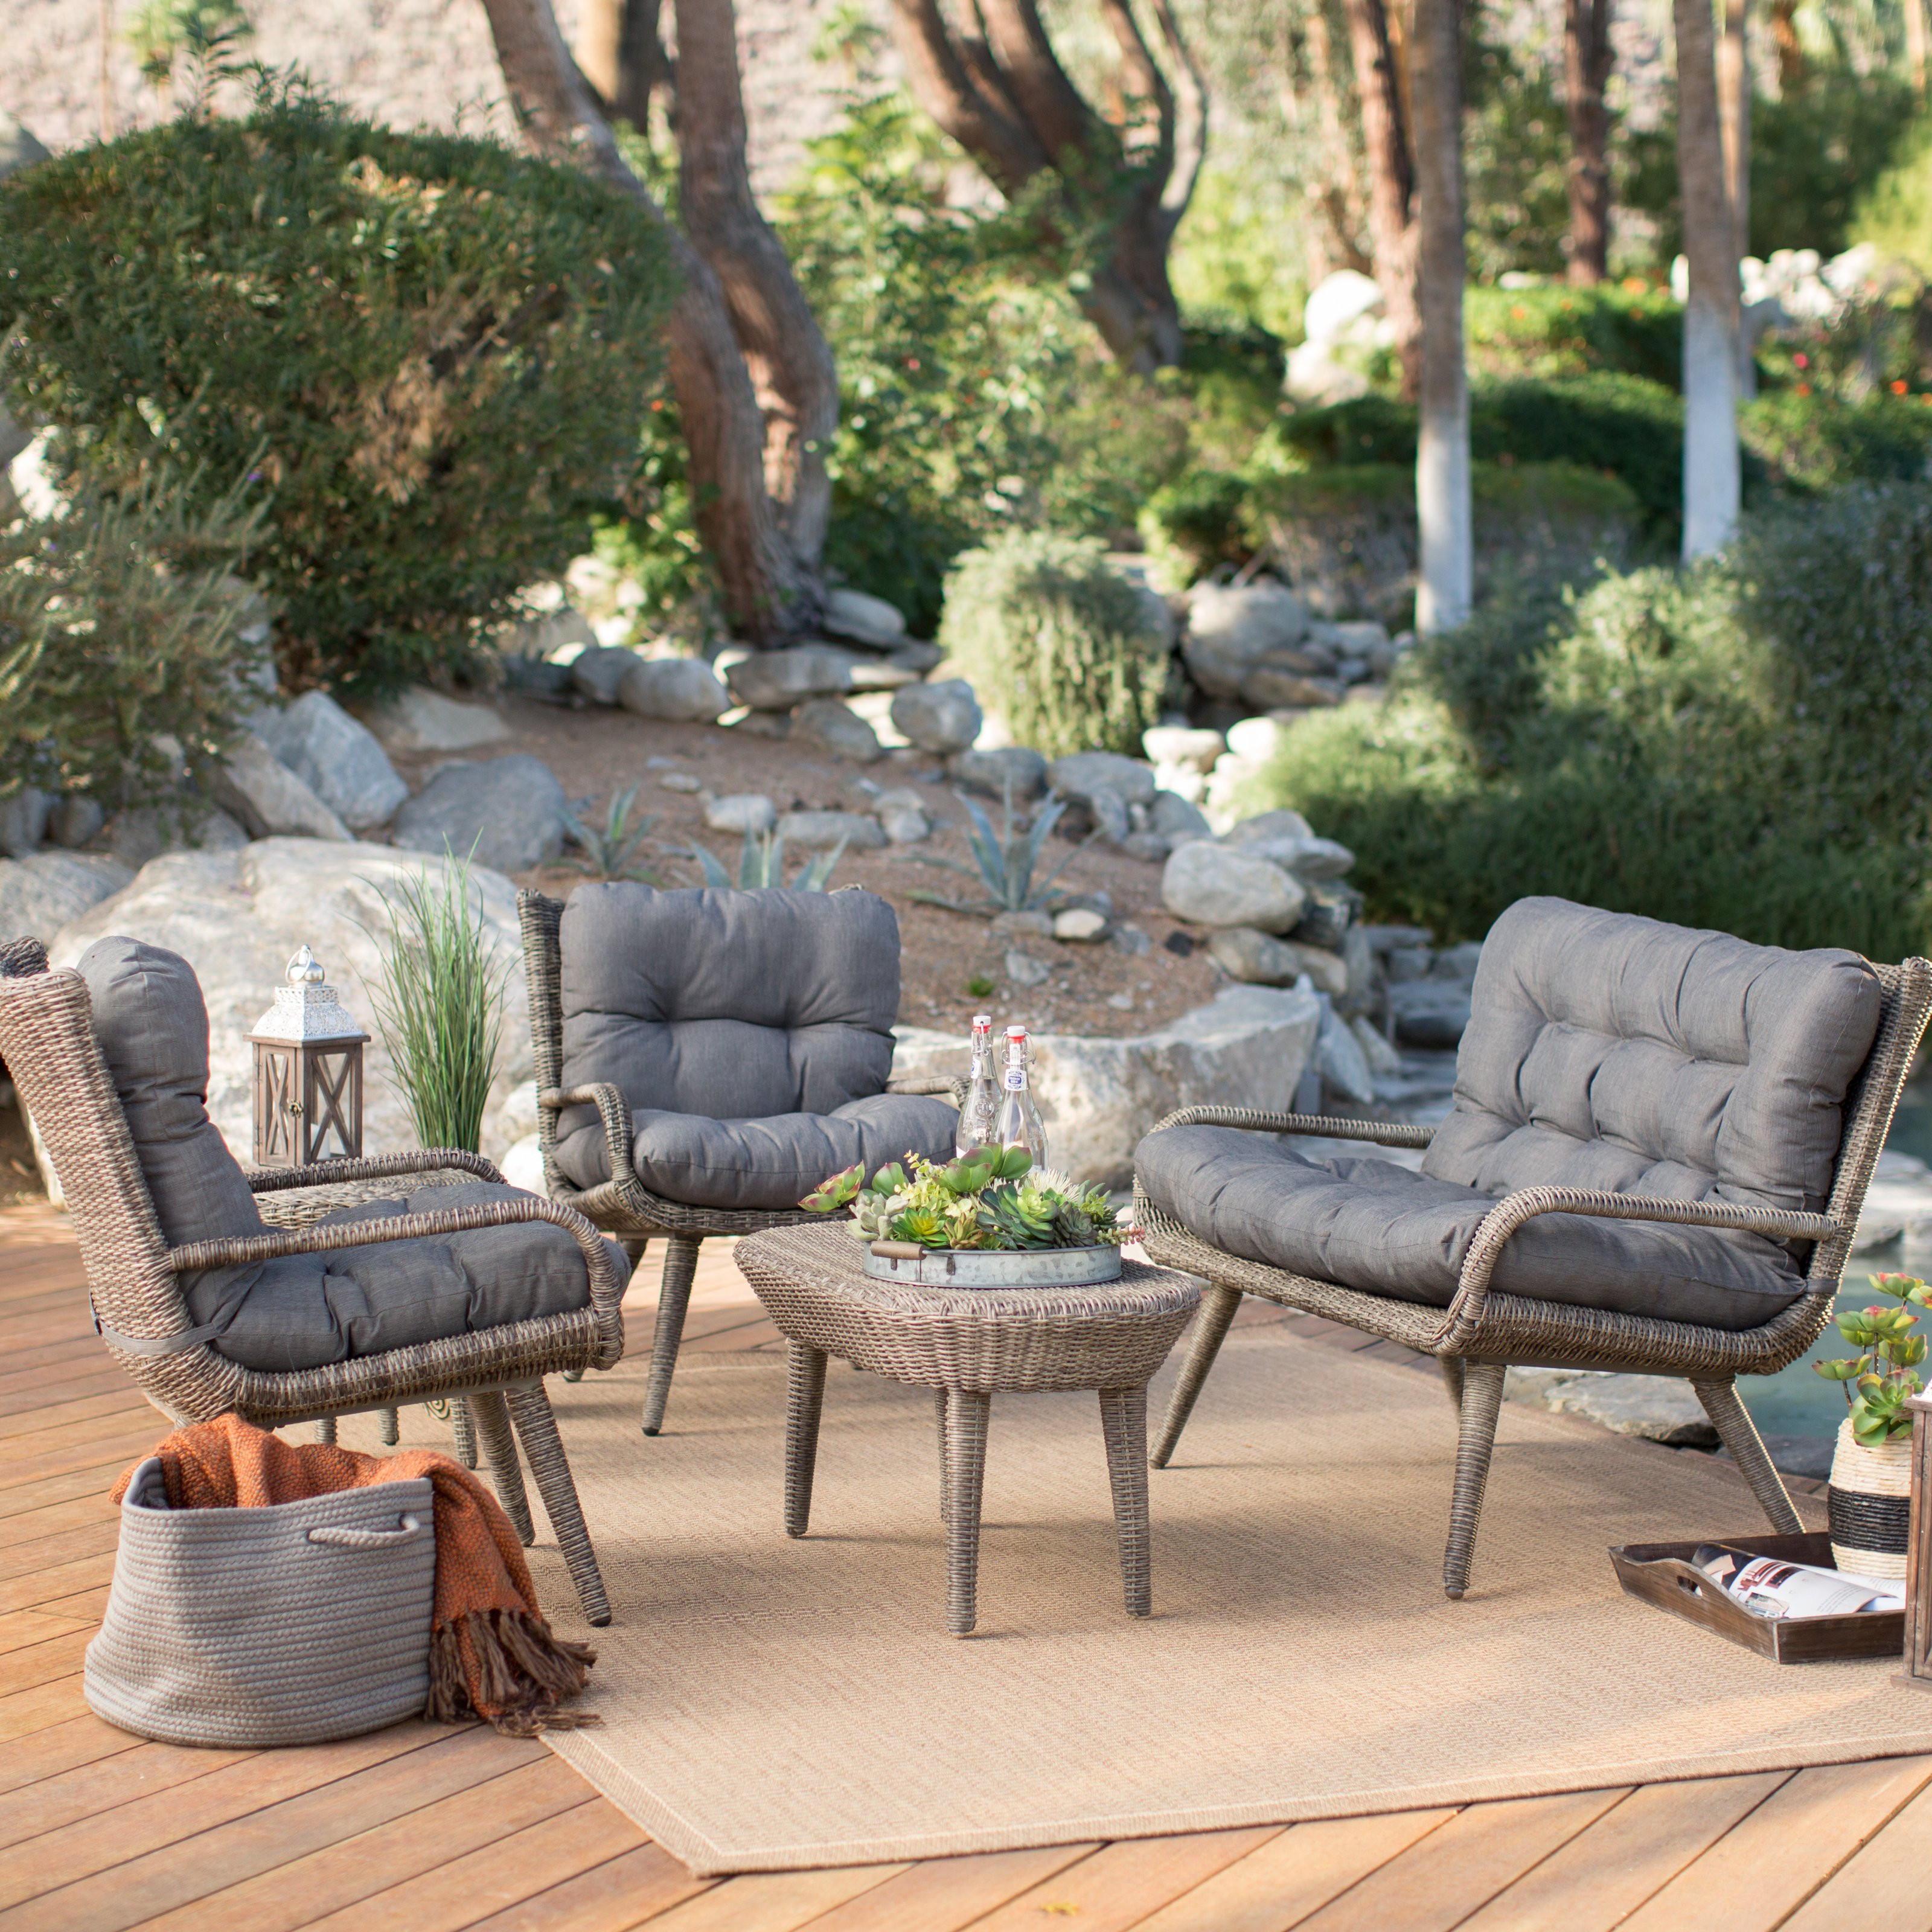 Best ideas about At Home Patio Furniture . Save or Pin Belham Living Rio All Weather Wicker Conversation Set Now.